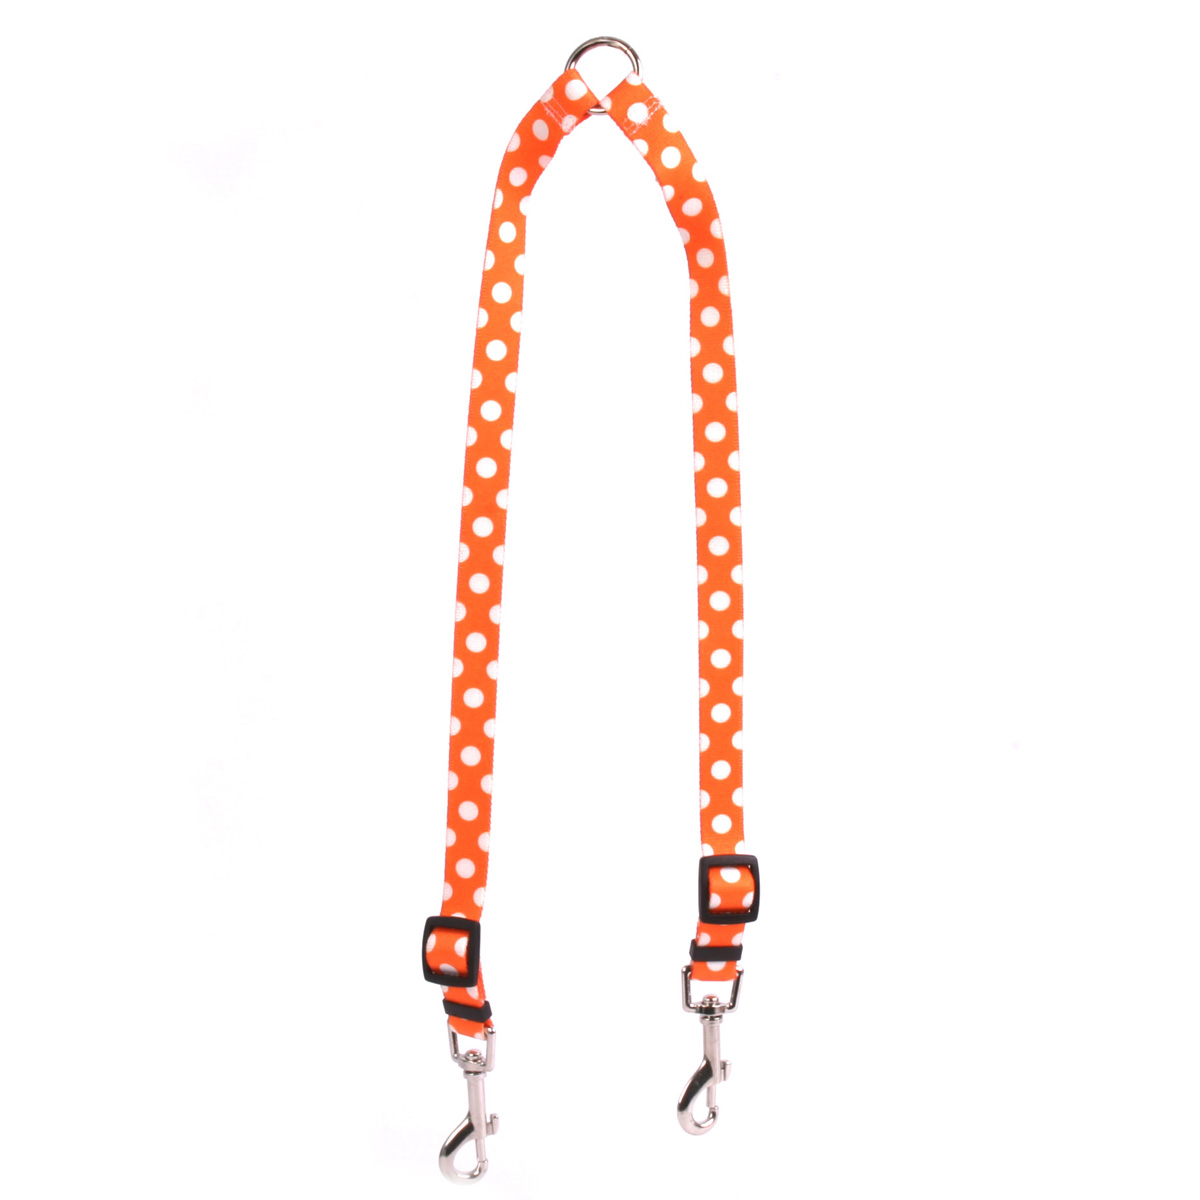 Tangerine Polka Dot Coupler Lead